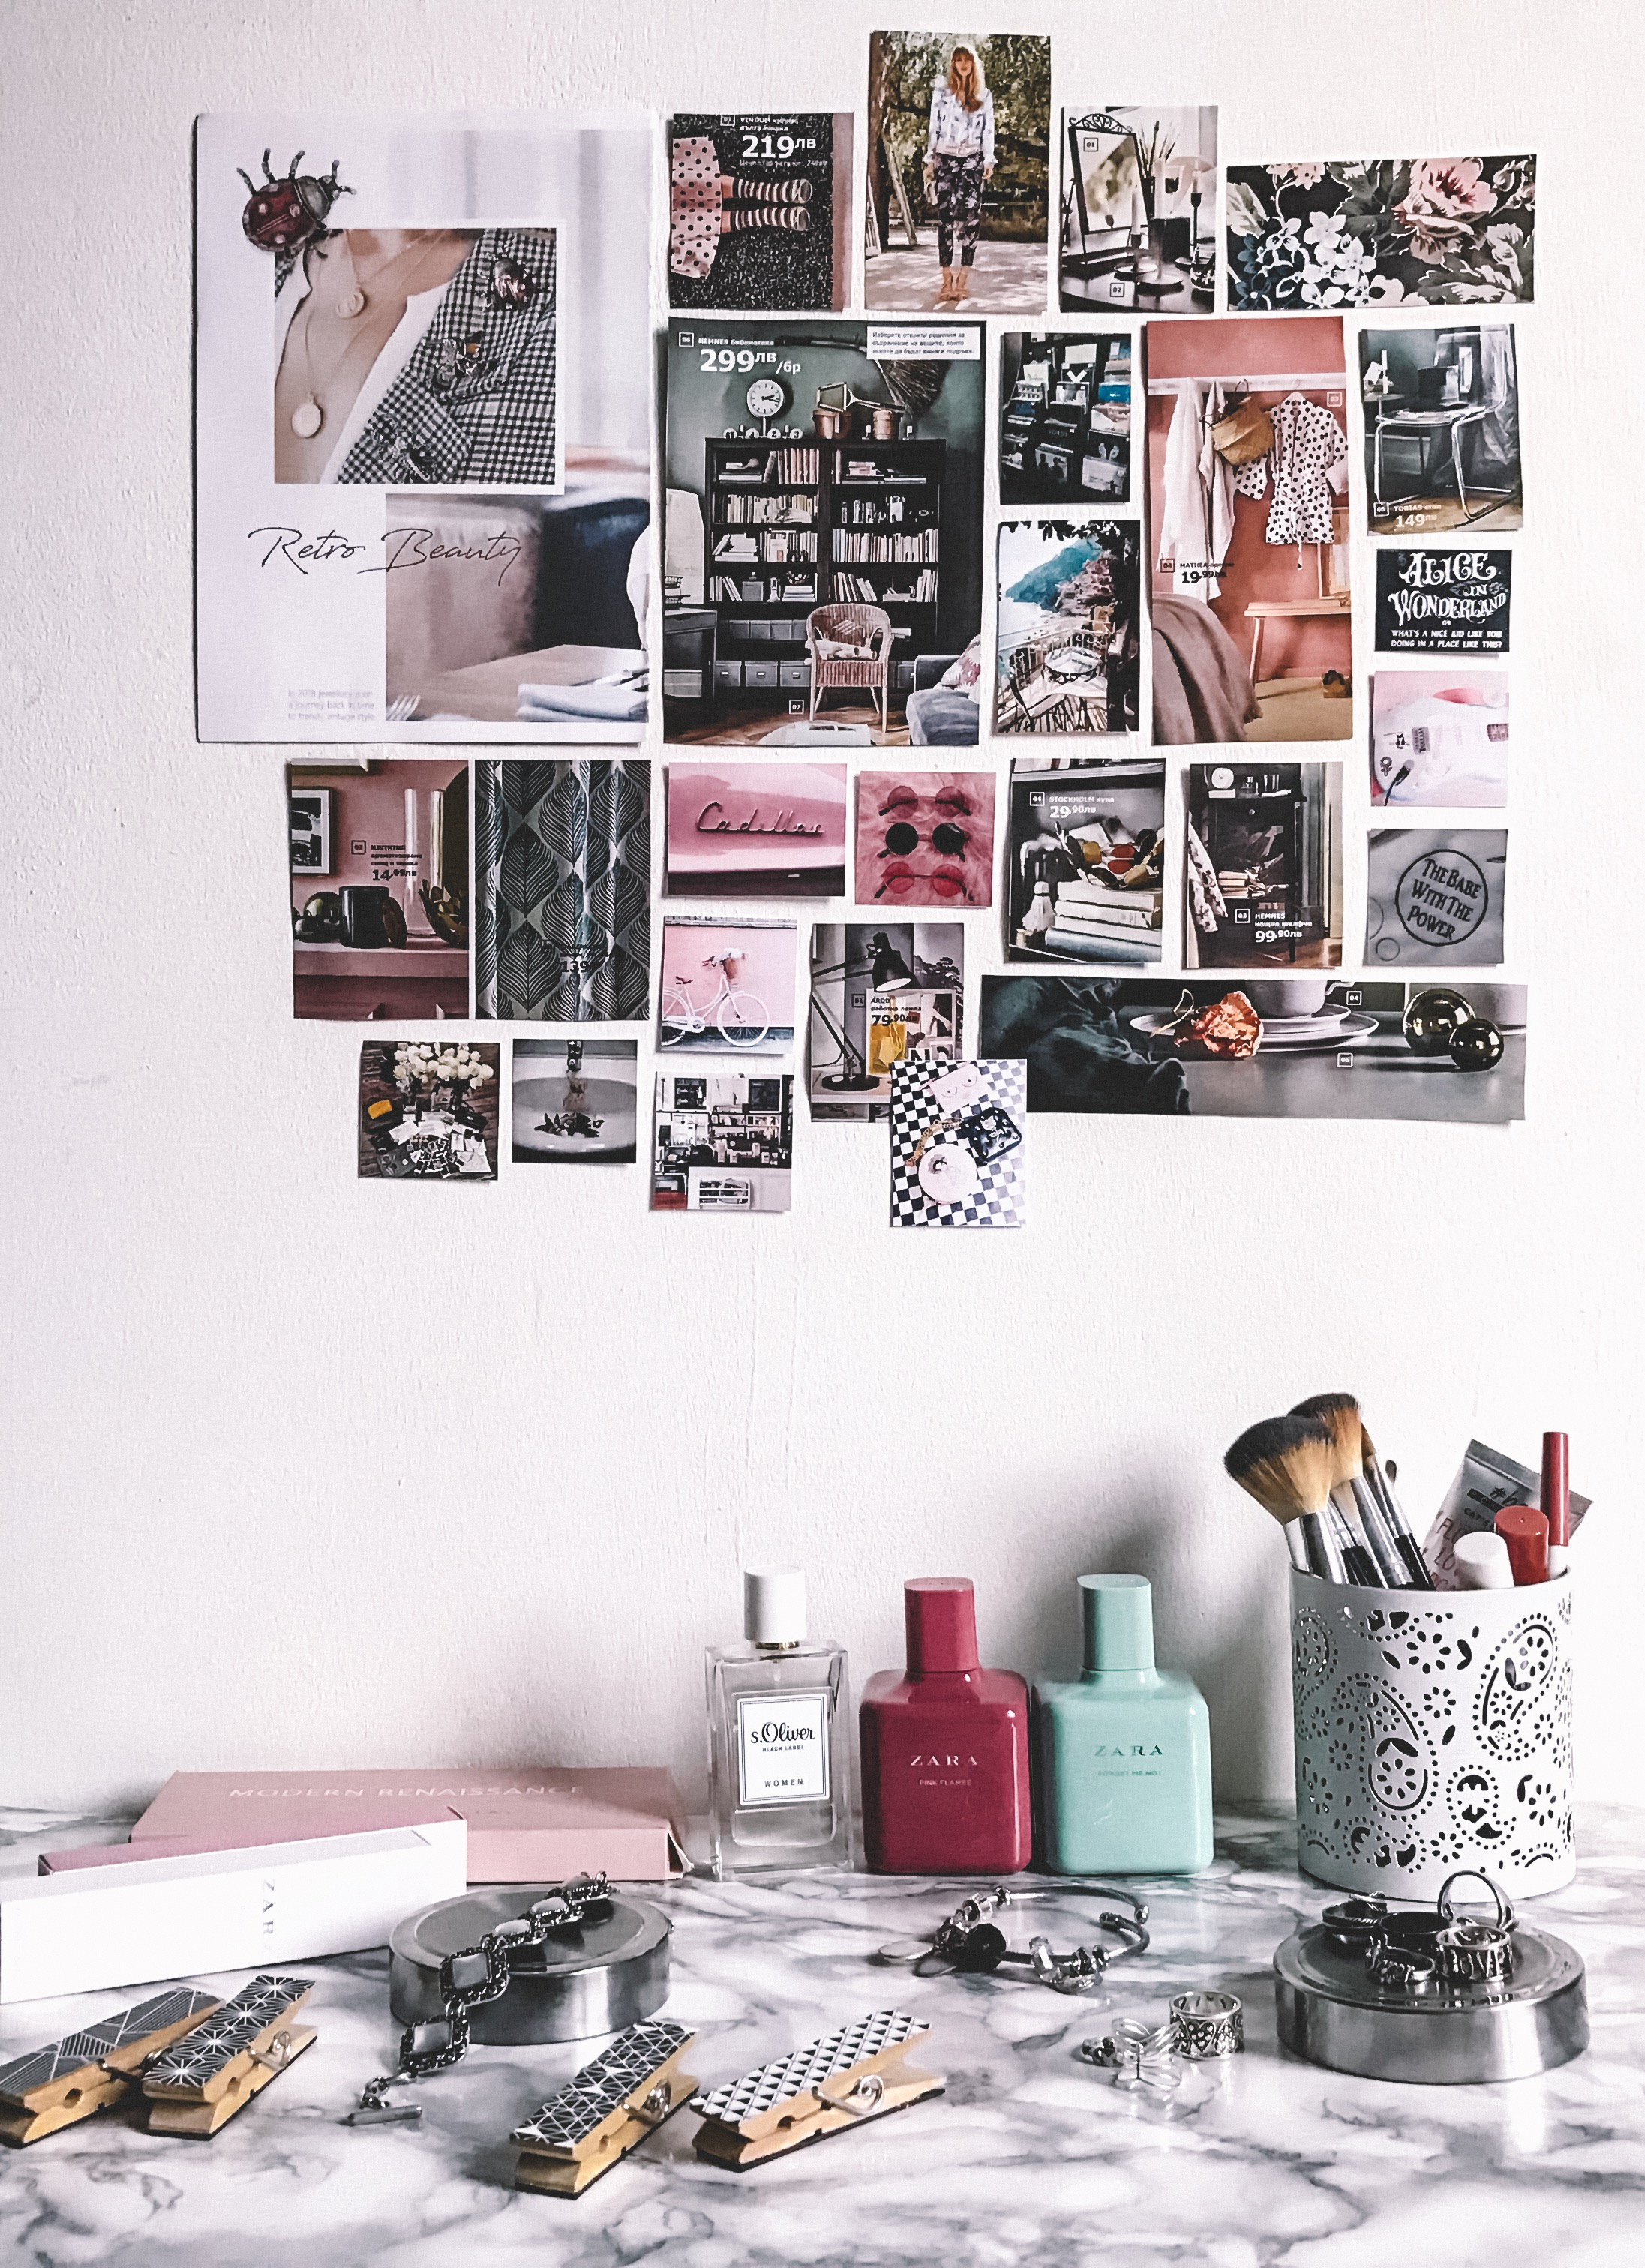 wall-art-workspace-collage-scrapbook-arockchicklife